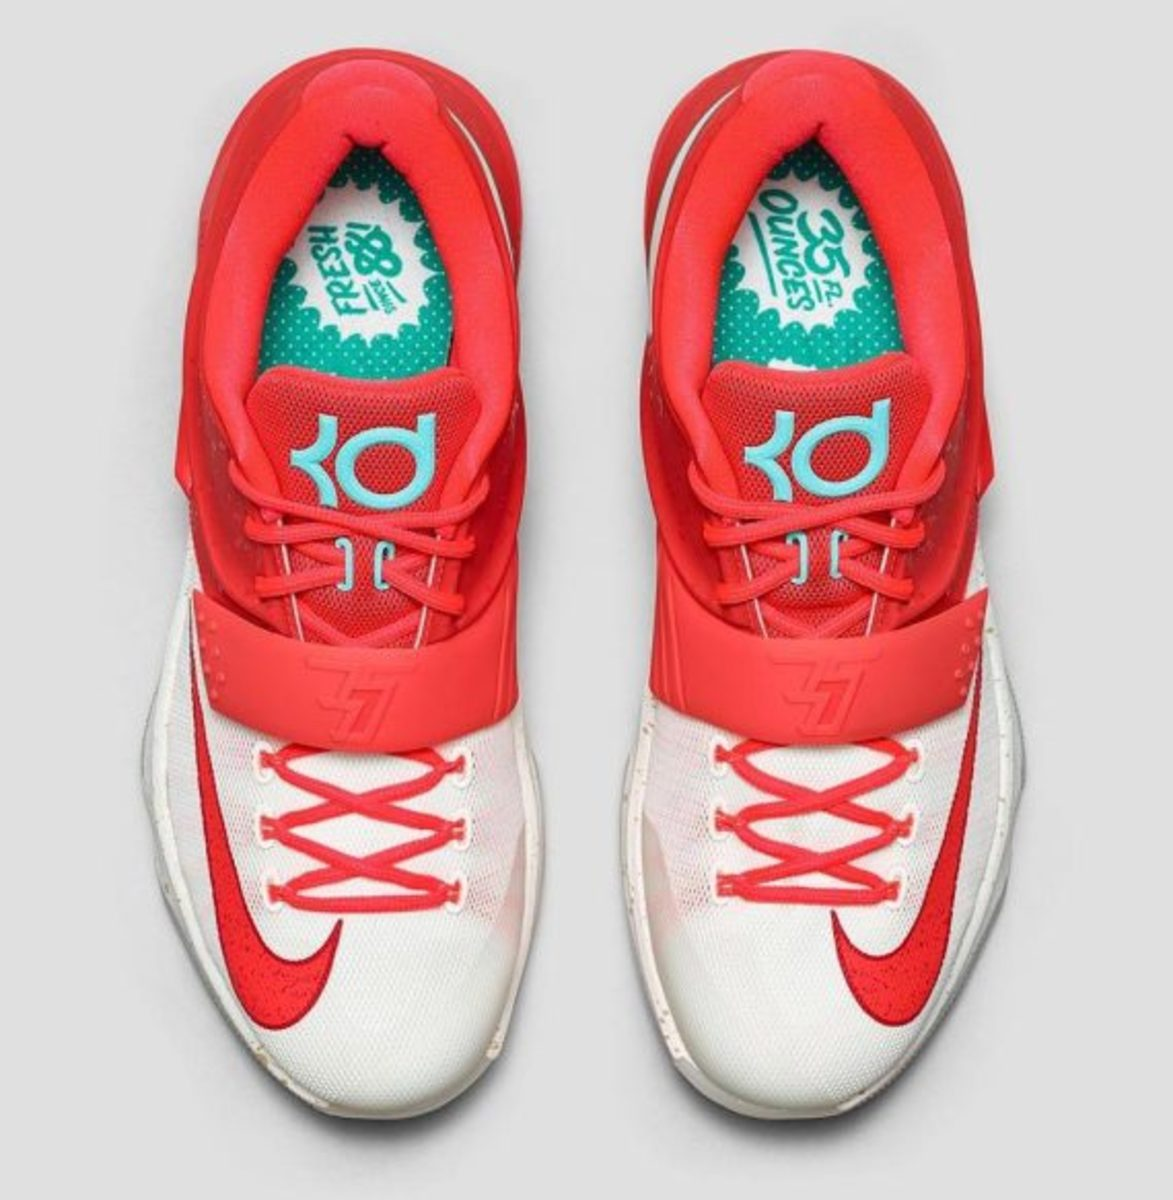 nike-kd-7-egg-nog-christmas-collection-01